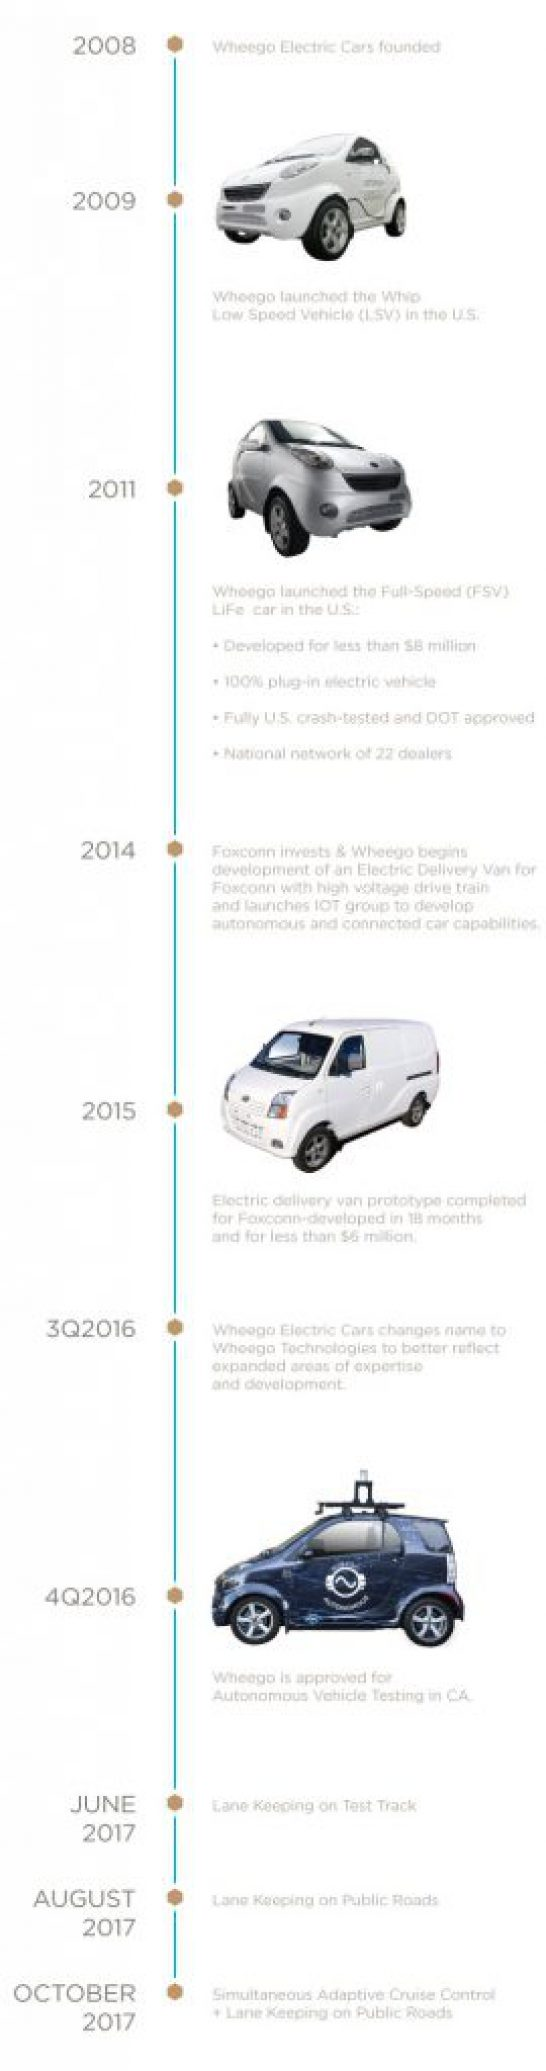 Wheego Timeline including Autonomous Vehicles development